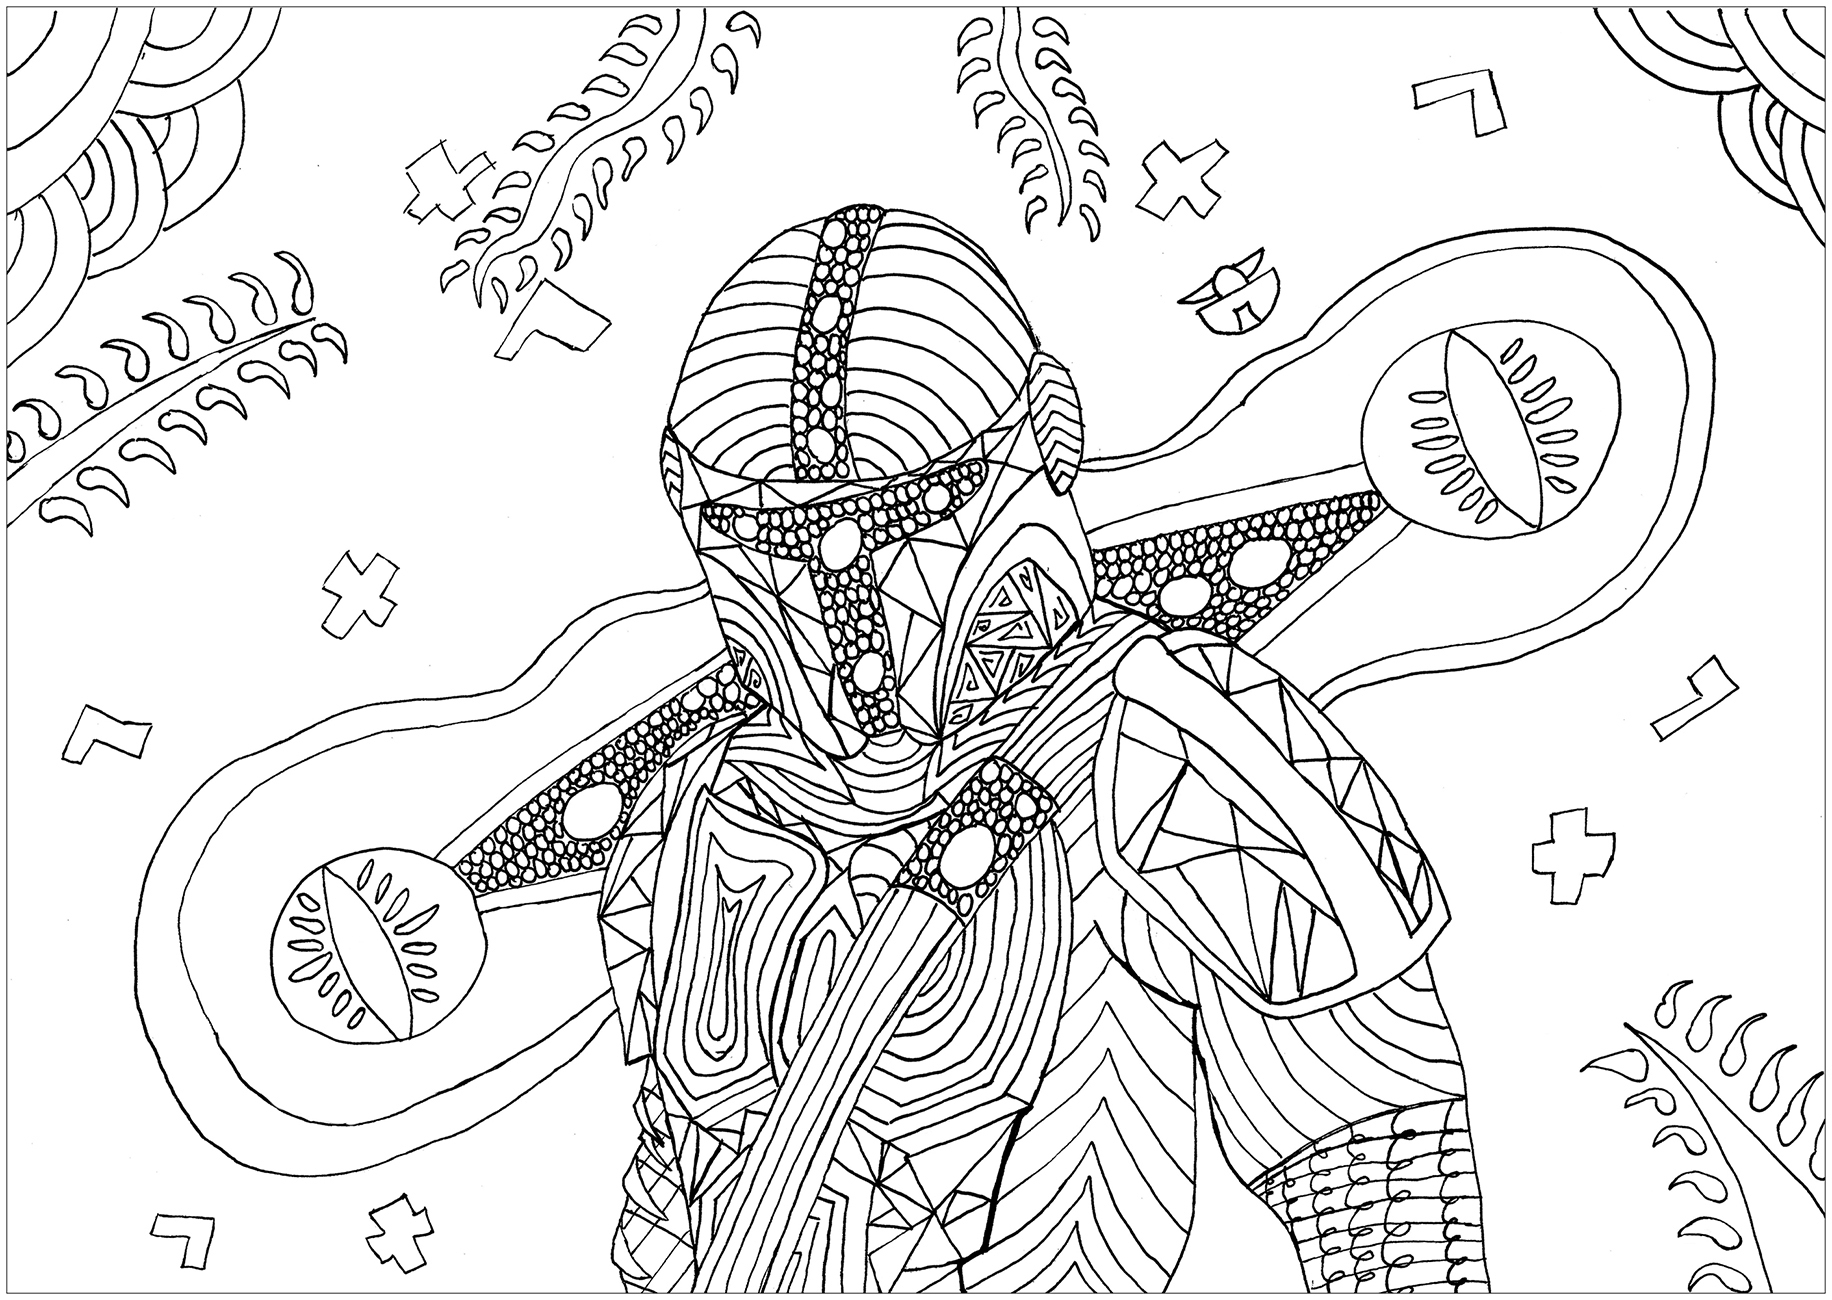 Free Star Wars coloring page to download, for children